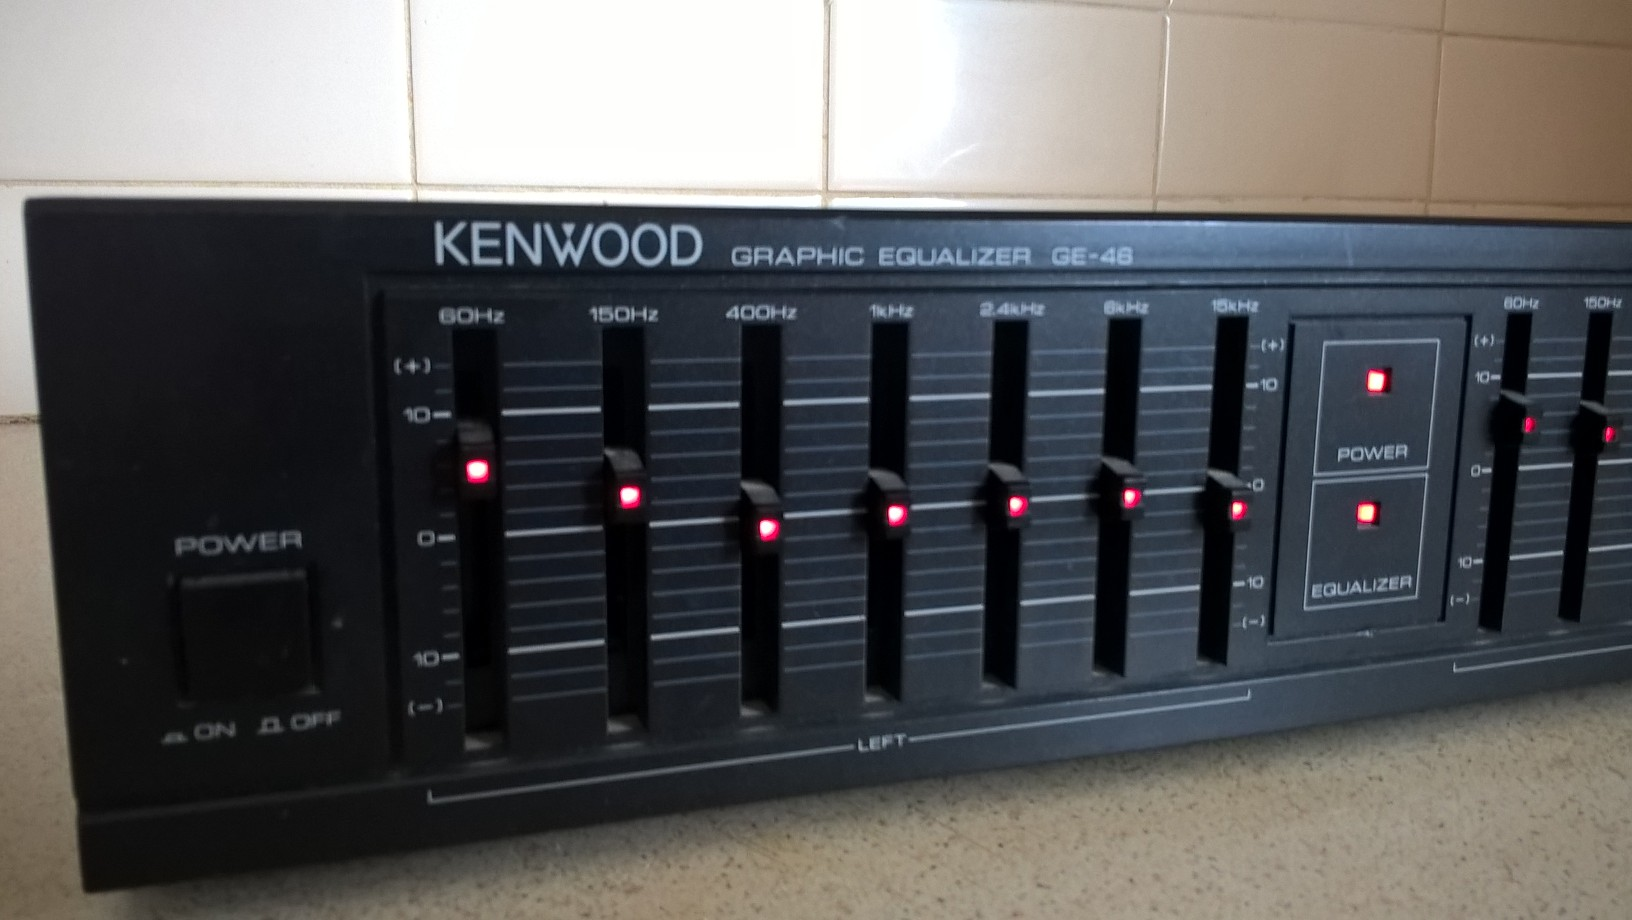 Fs Kenwood Ge 46 Graphic Equalizer 20 Classifieds Audio Wp 20161009 12 54 38 Pro